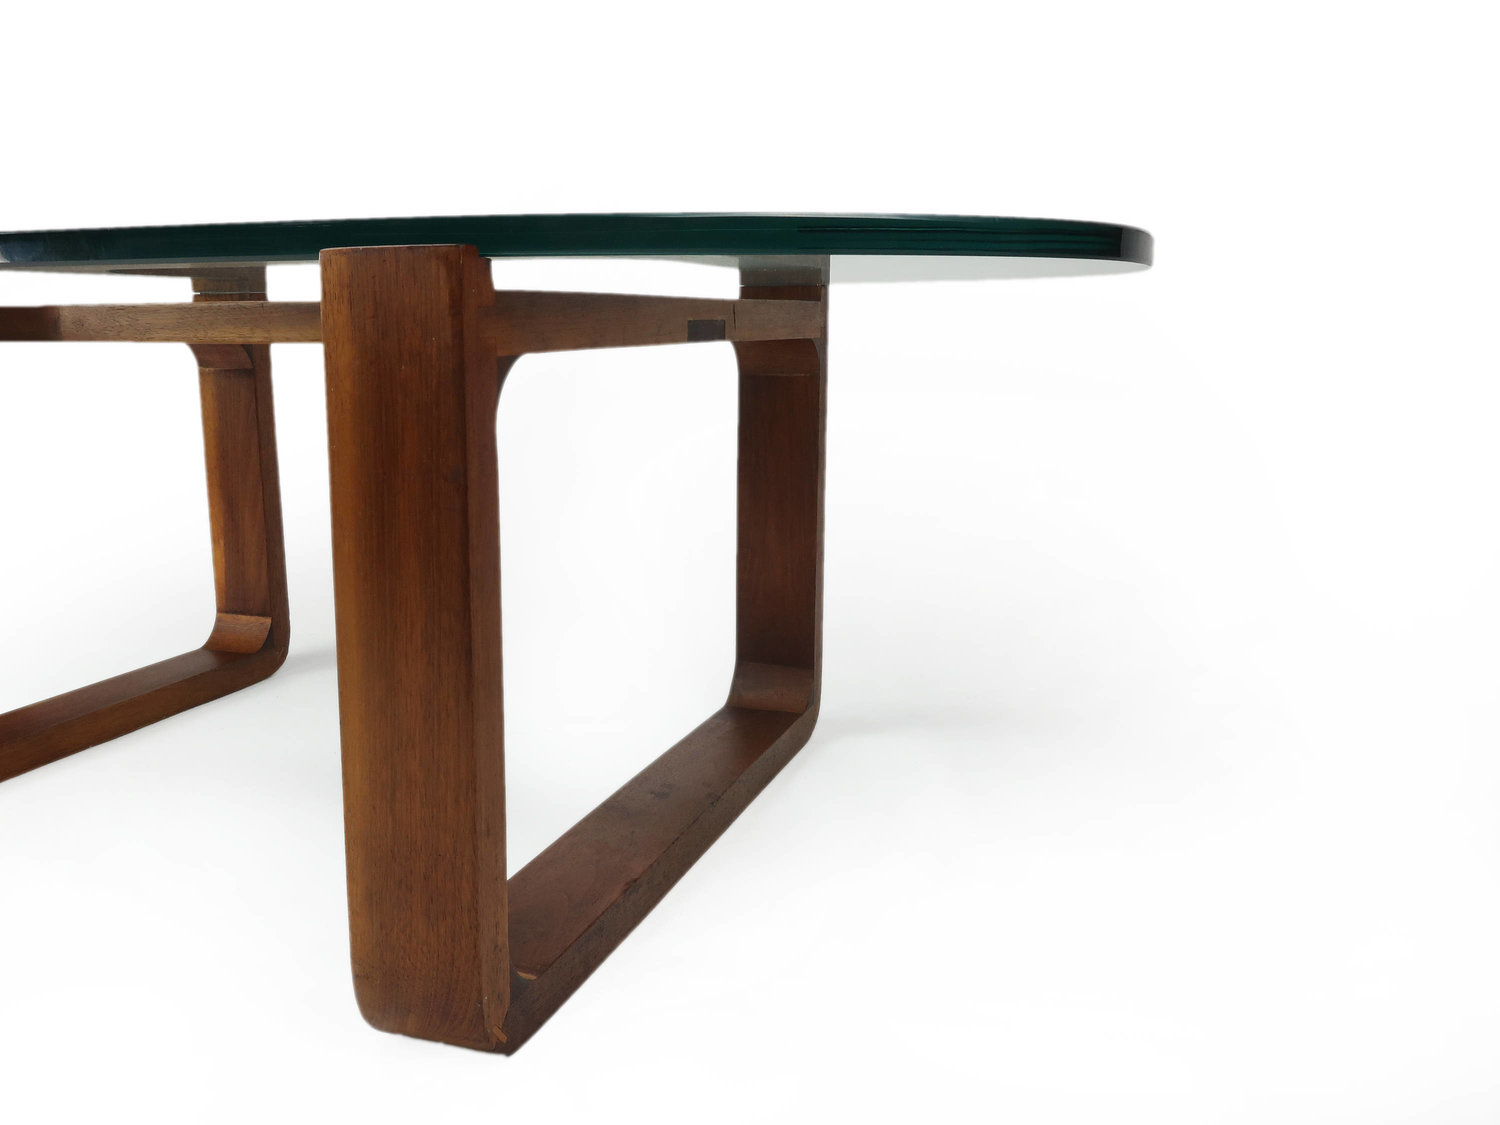 Fred camp glass top coffee table tenon design fred camp glass top coffee table geotapseo Image collections